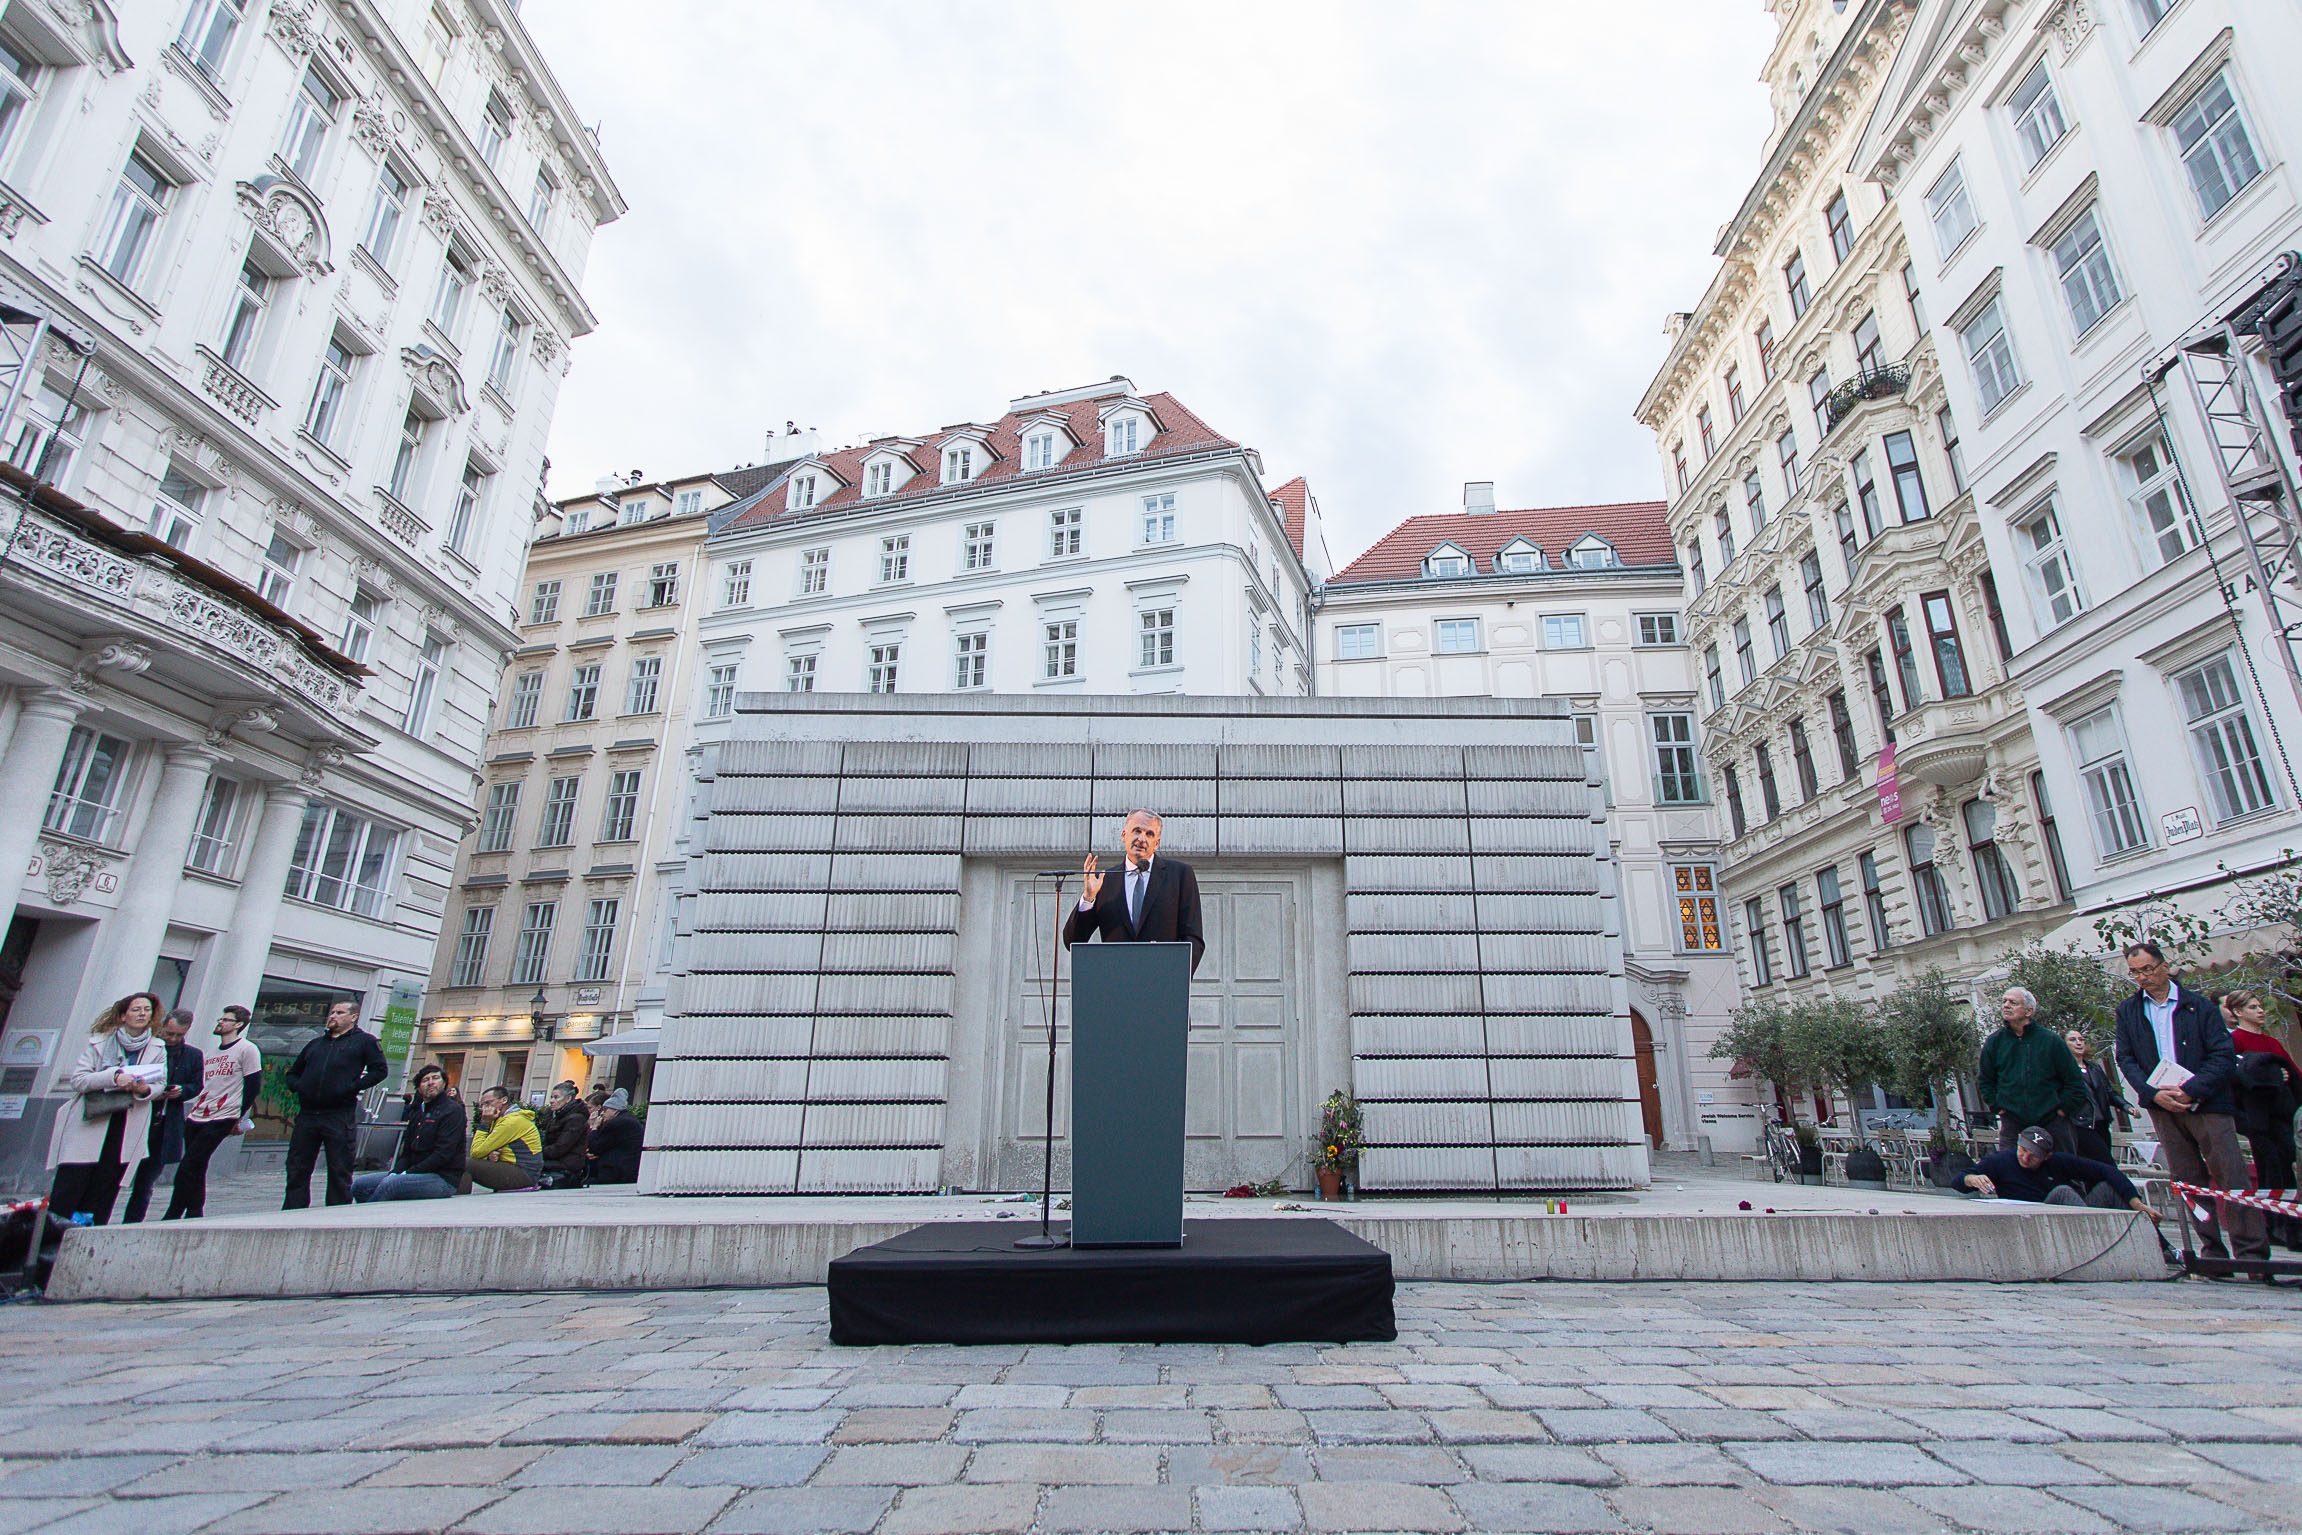 Timothy Snyder giving a Speech at Judenplatz, Vienna.